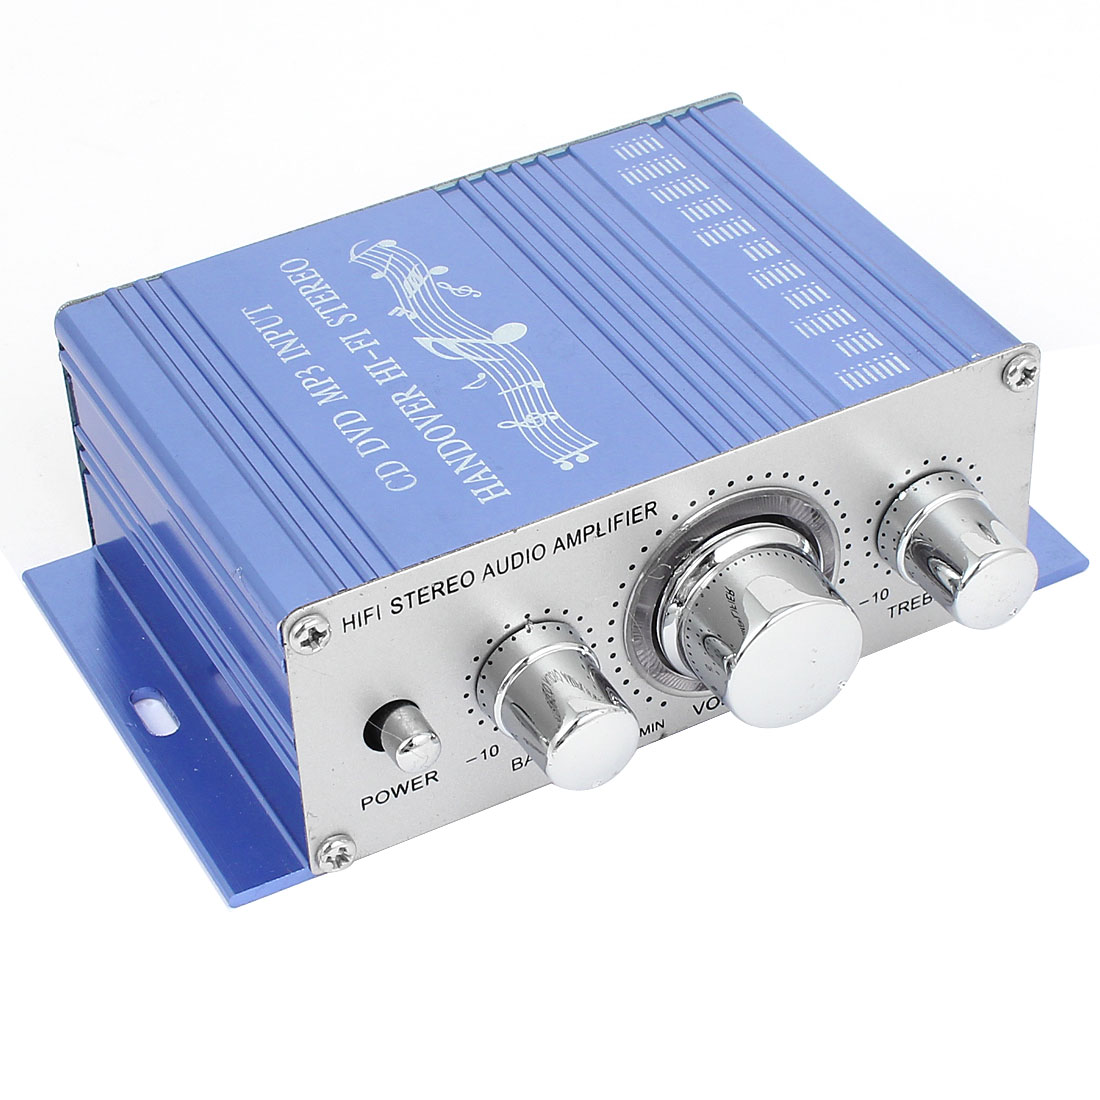 DC 12V 40W Car Blue Aluminum Mini Hifi Stereo Audio Power Amplifier